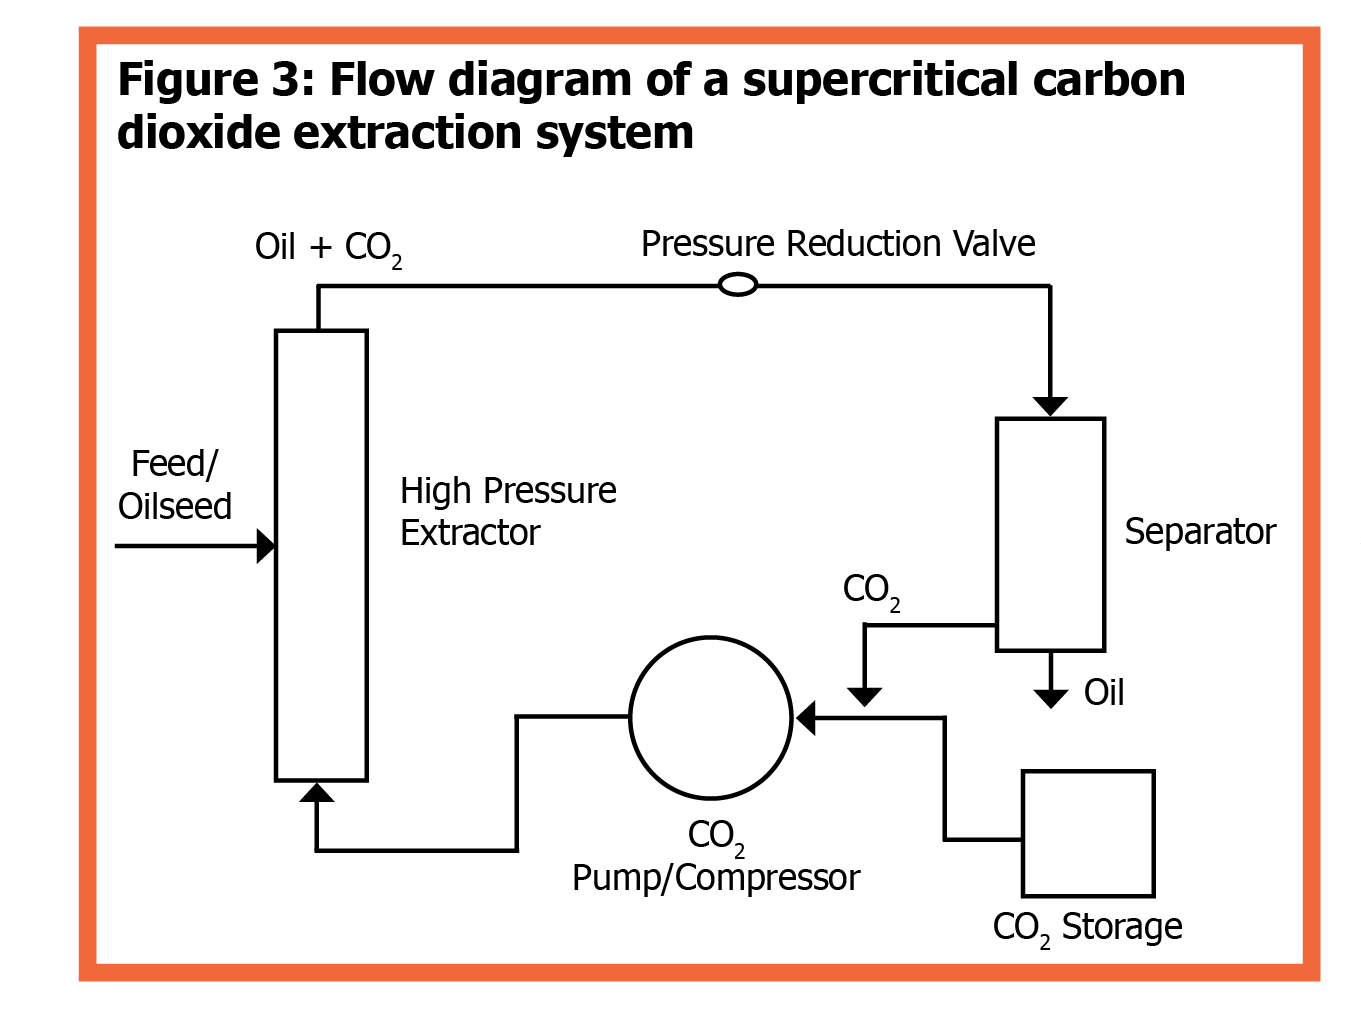 Fapc 159 oil and oilseed processing ii osu fact sheets figure 3 flow diagram of a supercritical carbon dioxide extraction system nvjuhfo Image collections